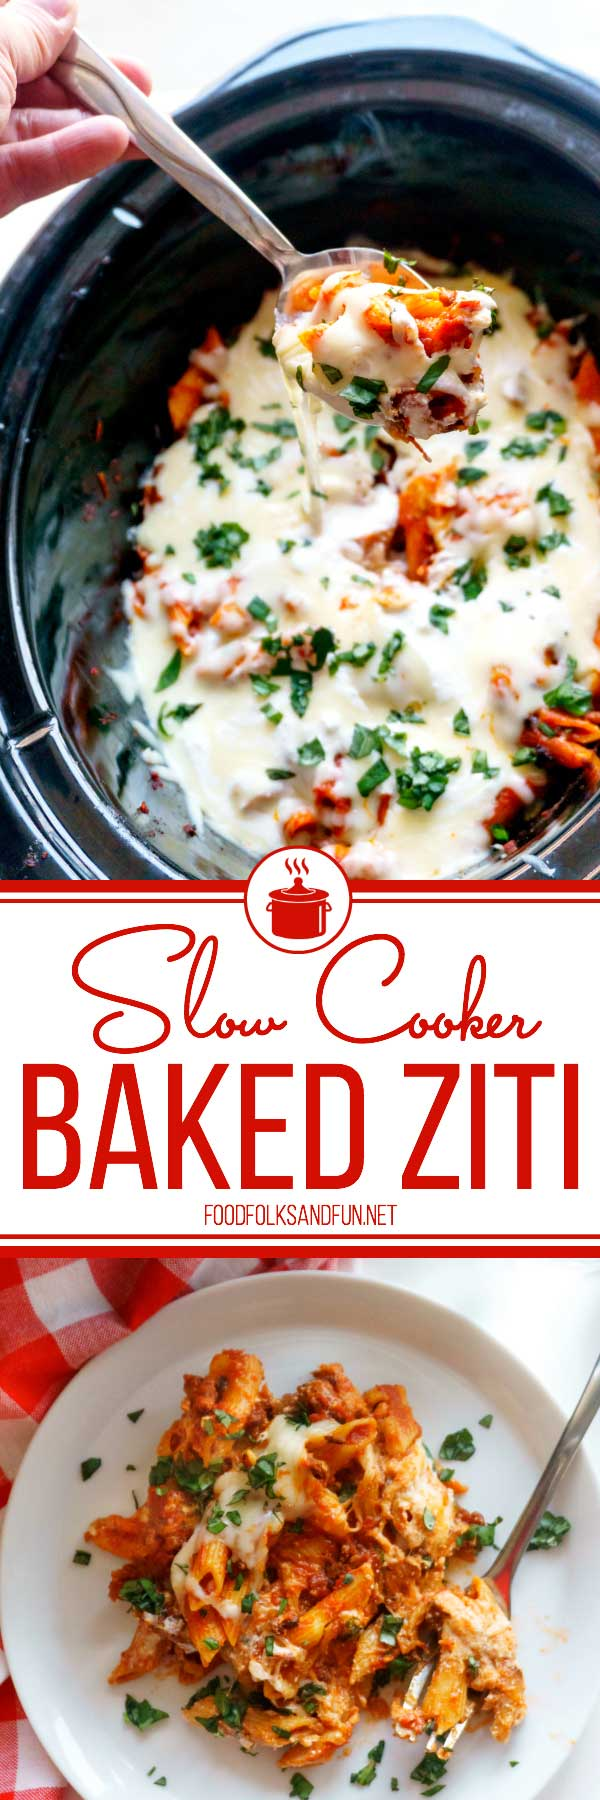 This Slow Cooker Baked Ziti recipe is the perfect dinner recipe for year-round cooking. It's great for weeknight dinners and for company! Plus, it tastes pretty amazing--I mean just look at all of that melty cheese!